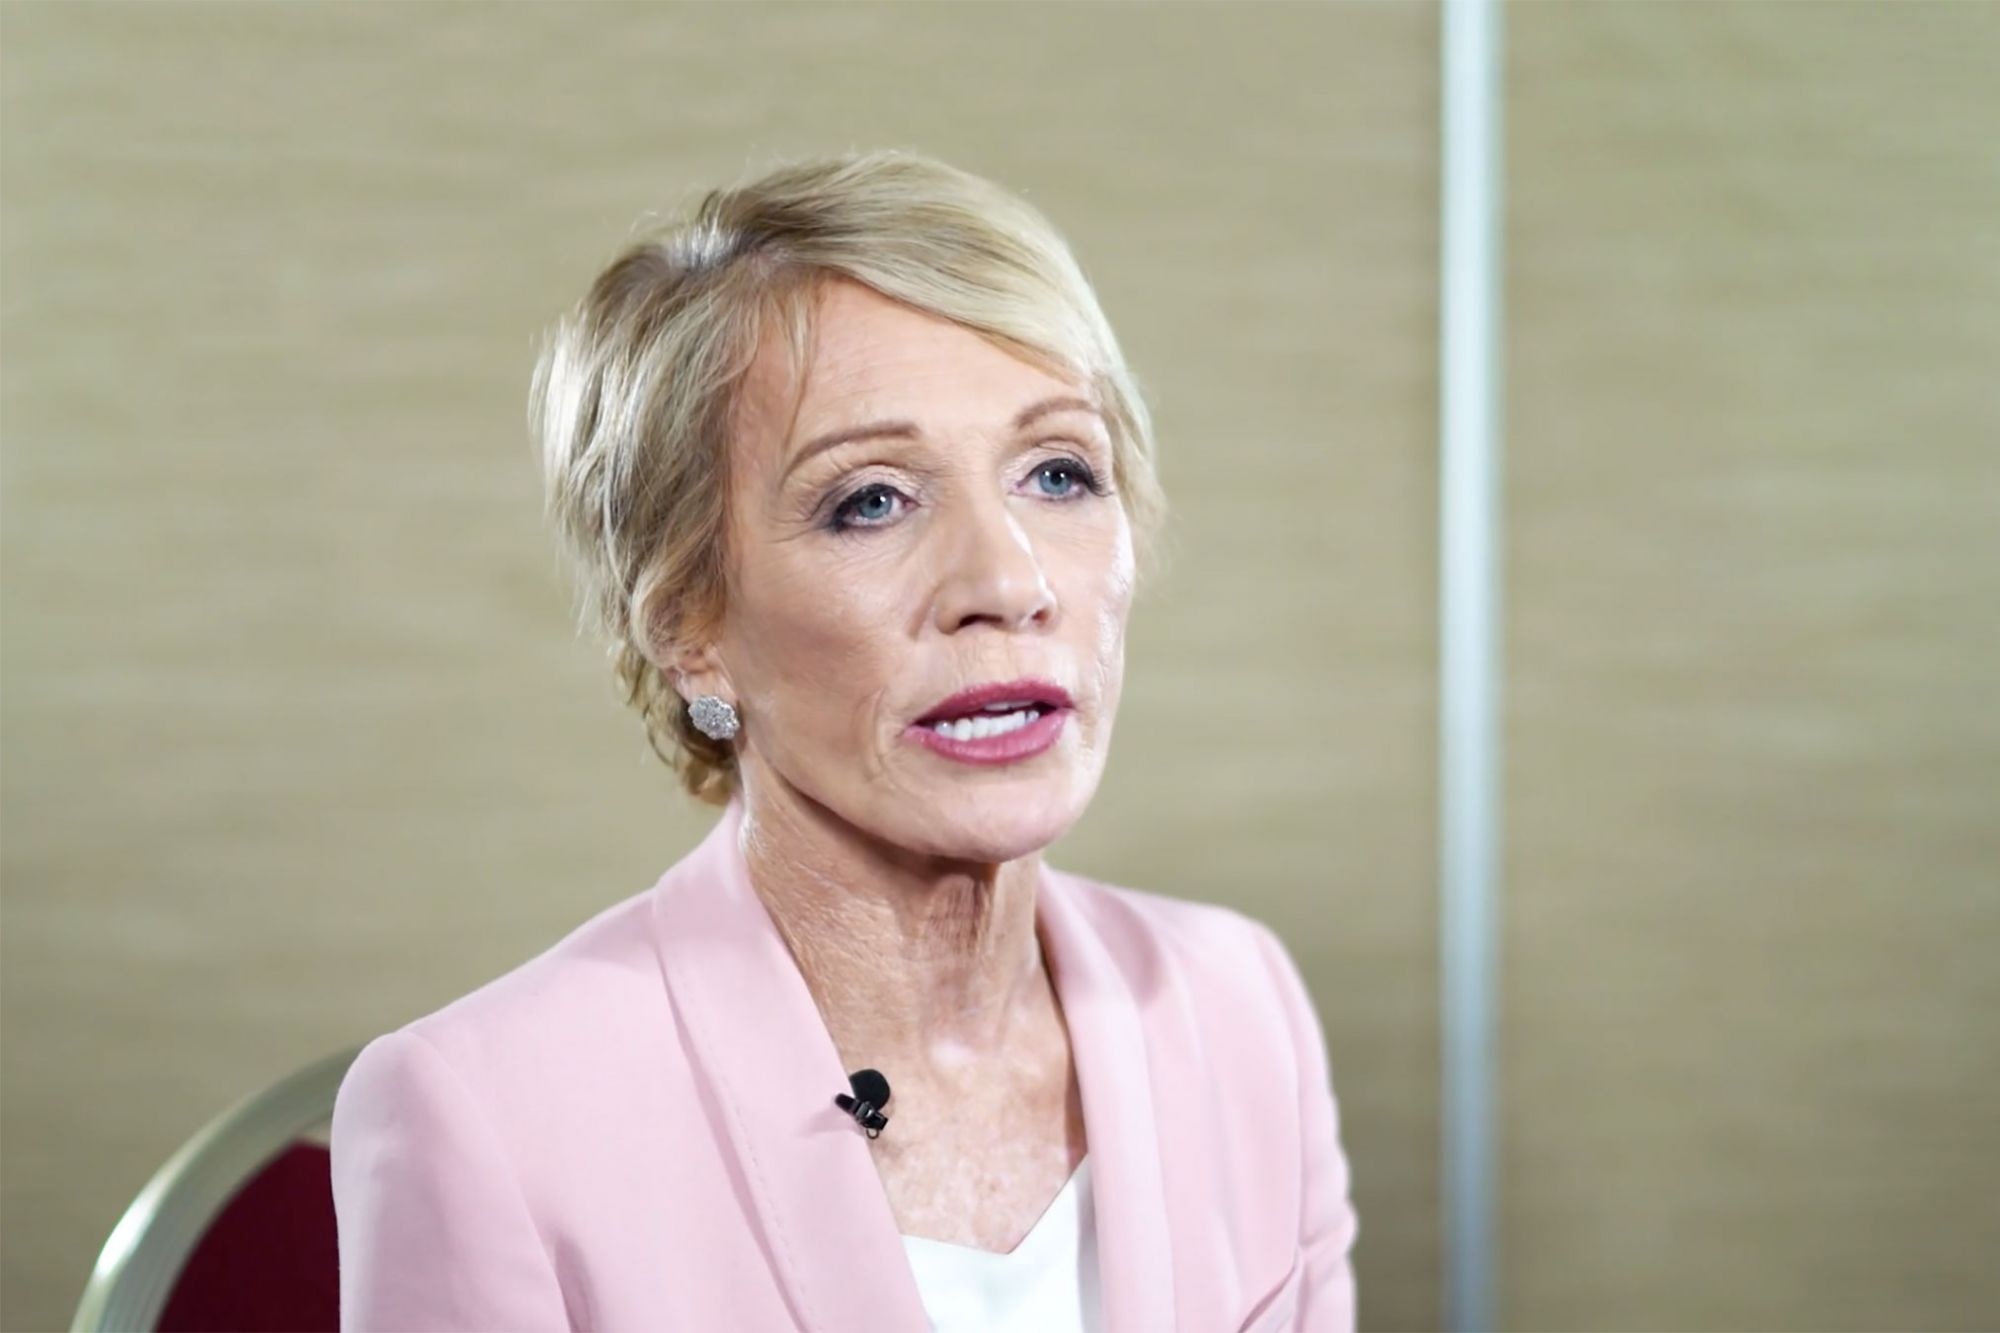 'Shark Tank's' Barbara Corcoran Says She Built Her Business 'Almost Like a Man'